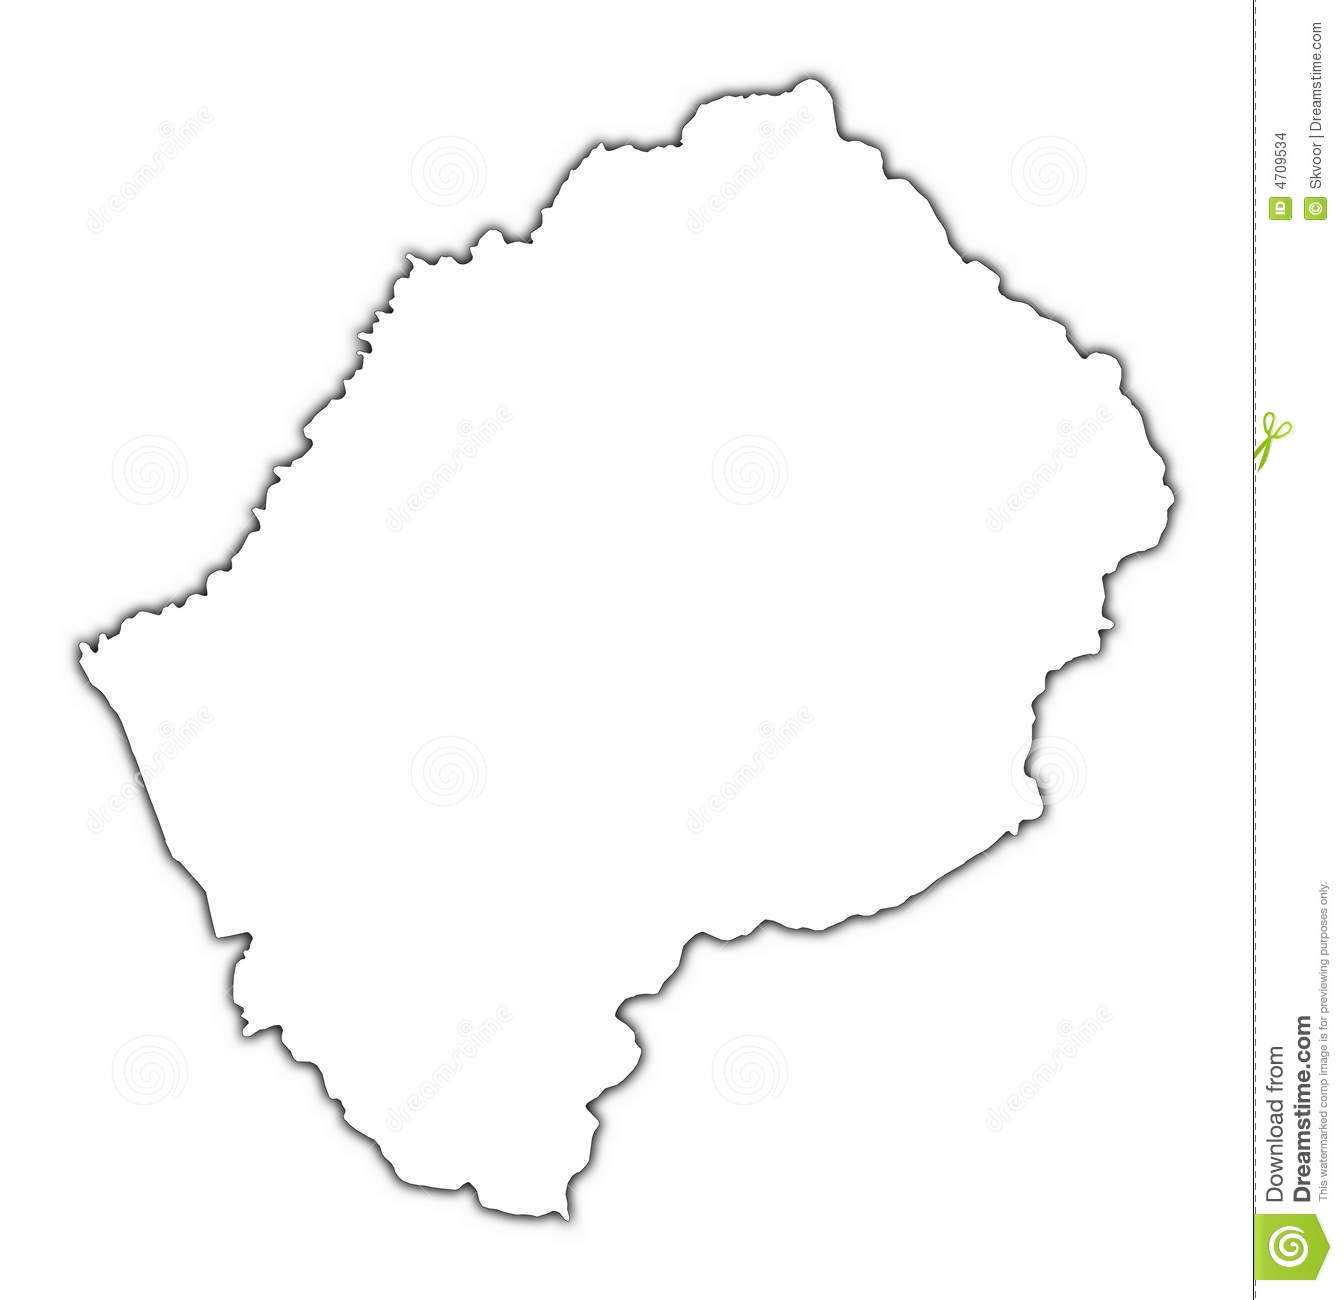 Lesotho map clipart.